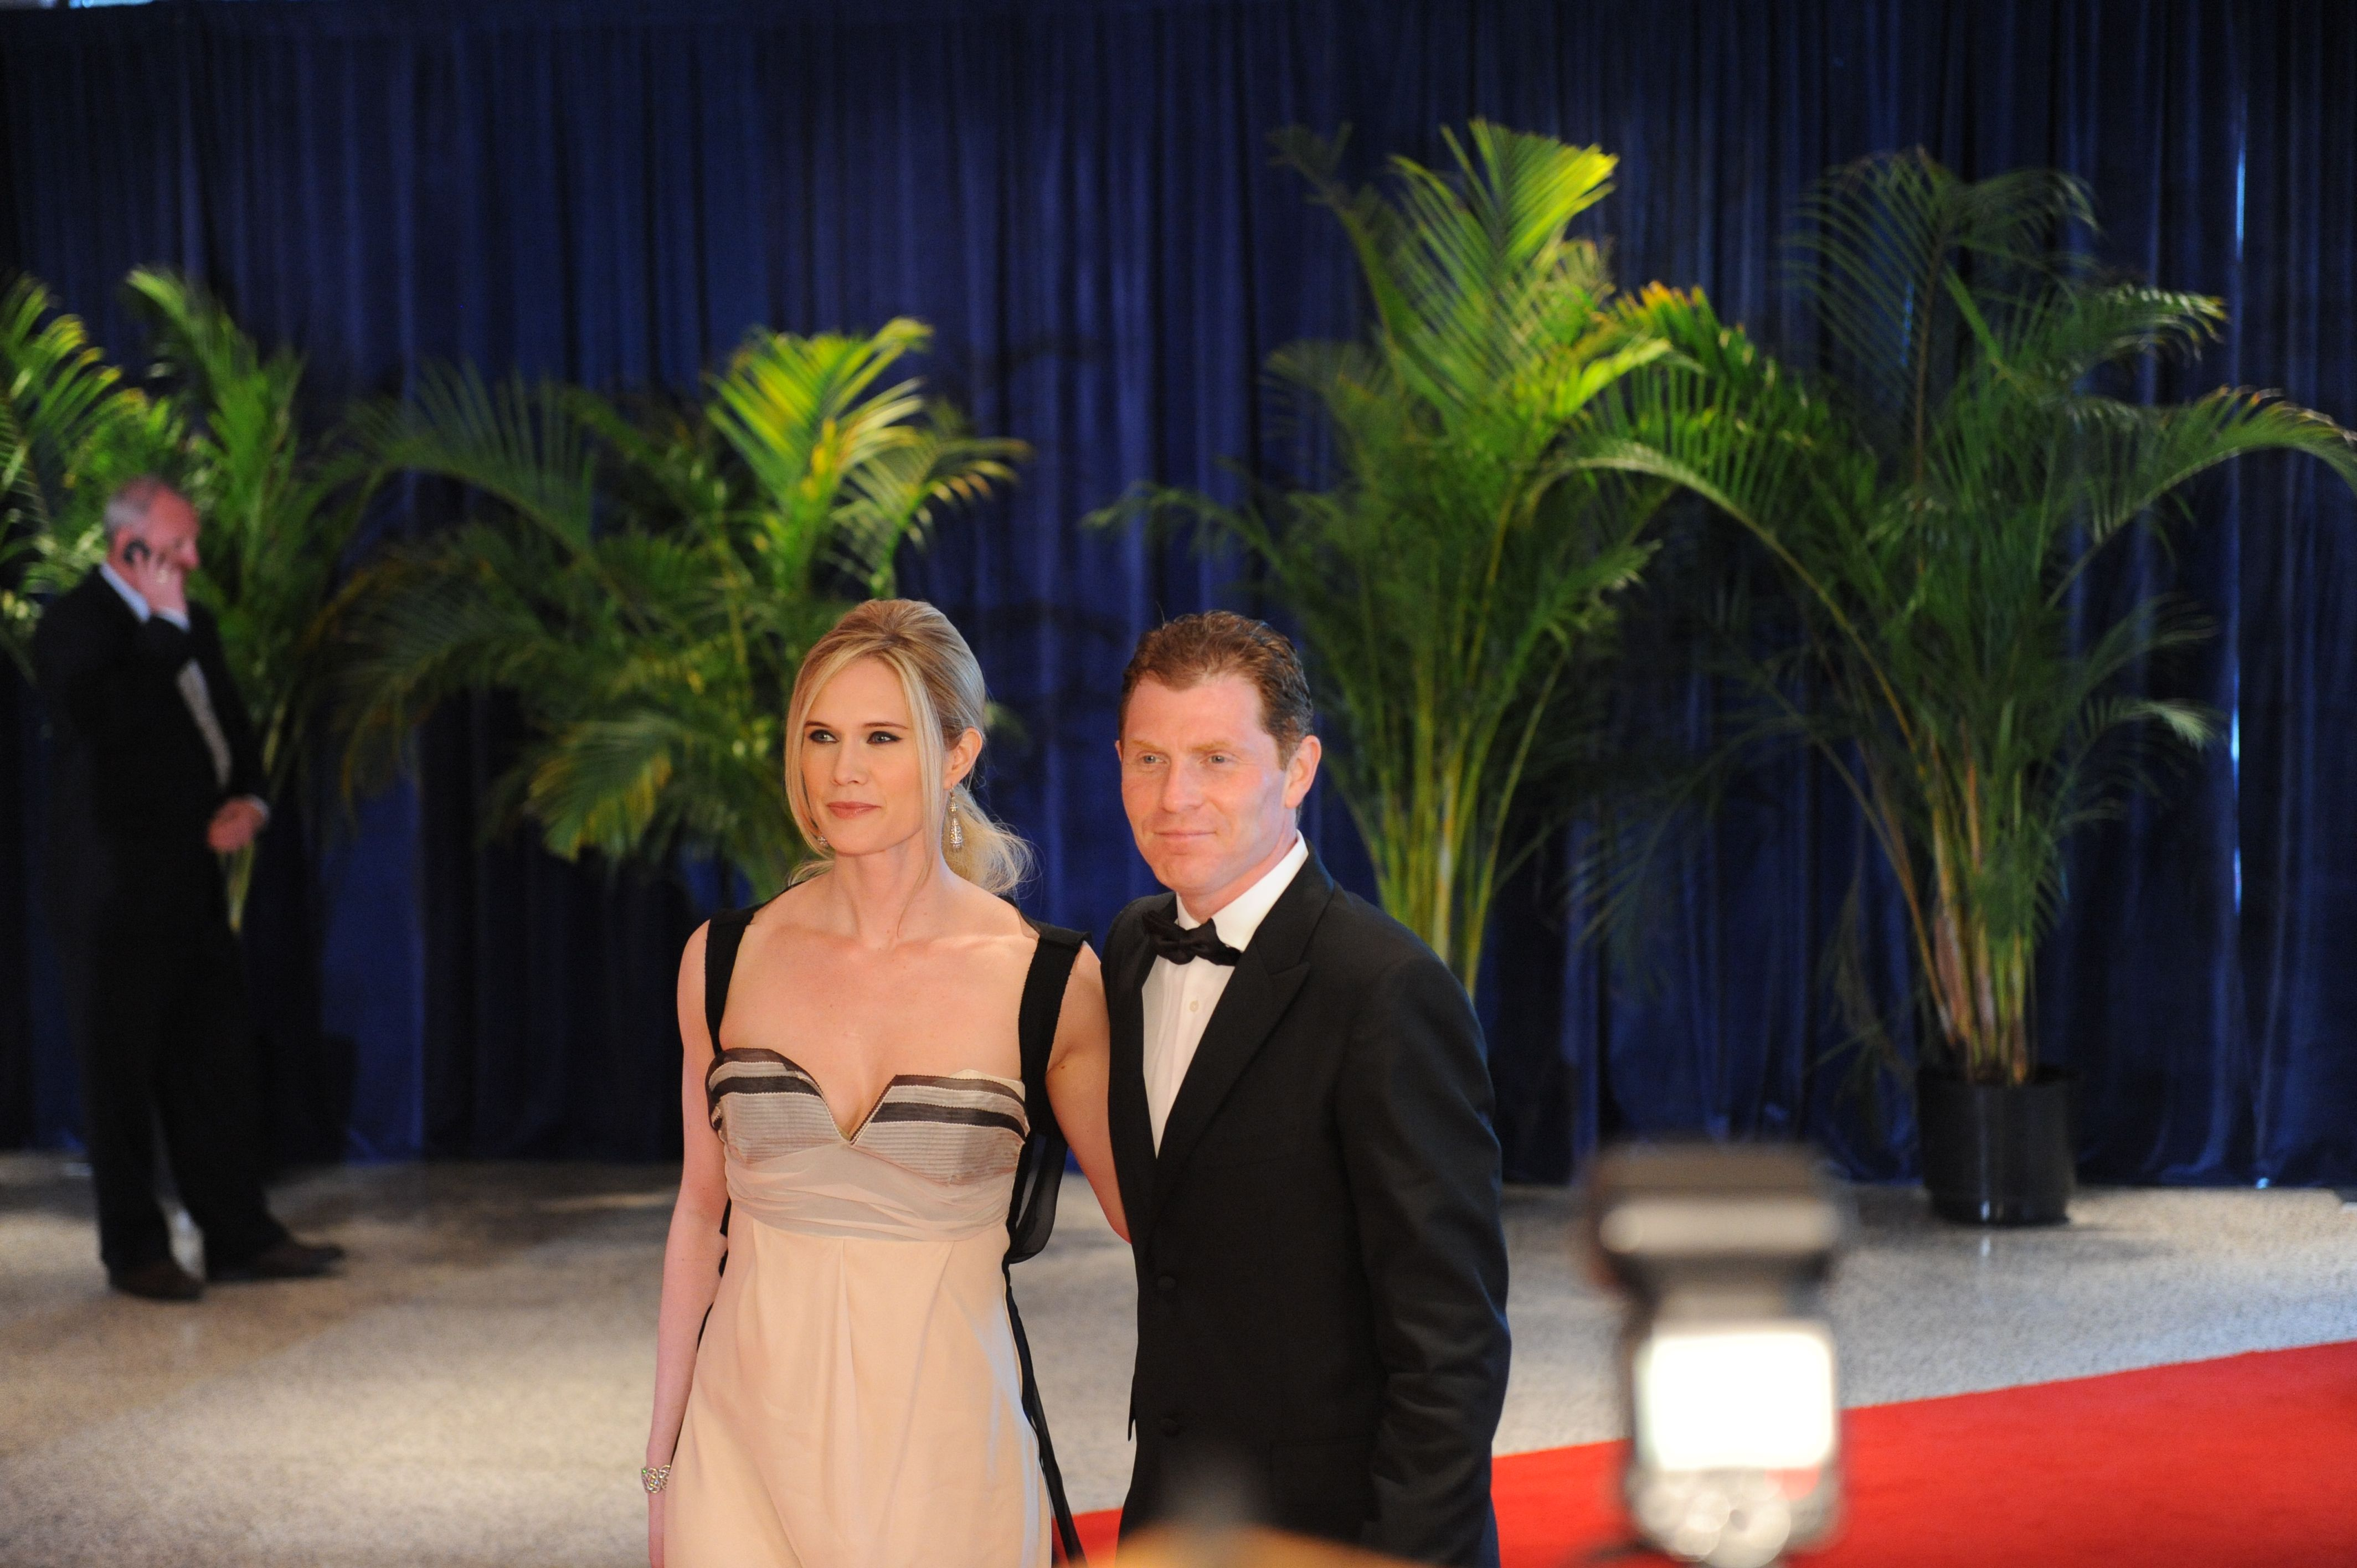 Chef Bobby Flay and wife actress Stephanie March, WHCD